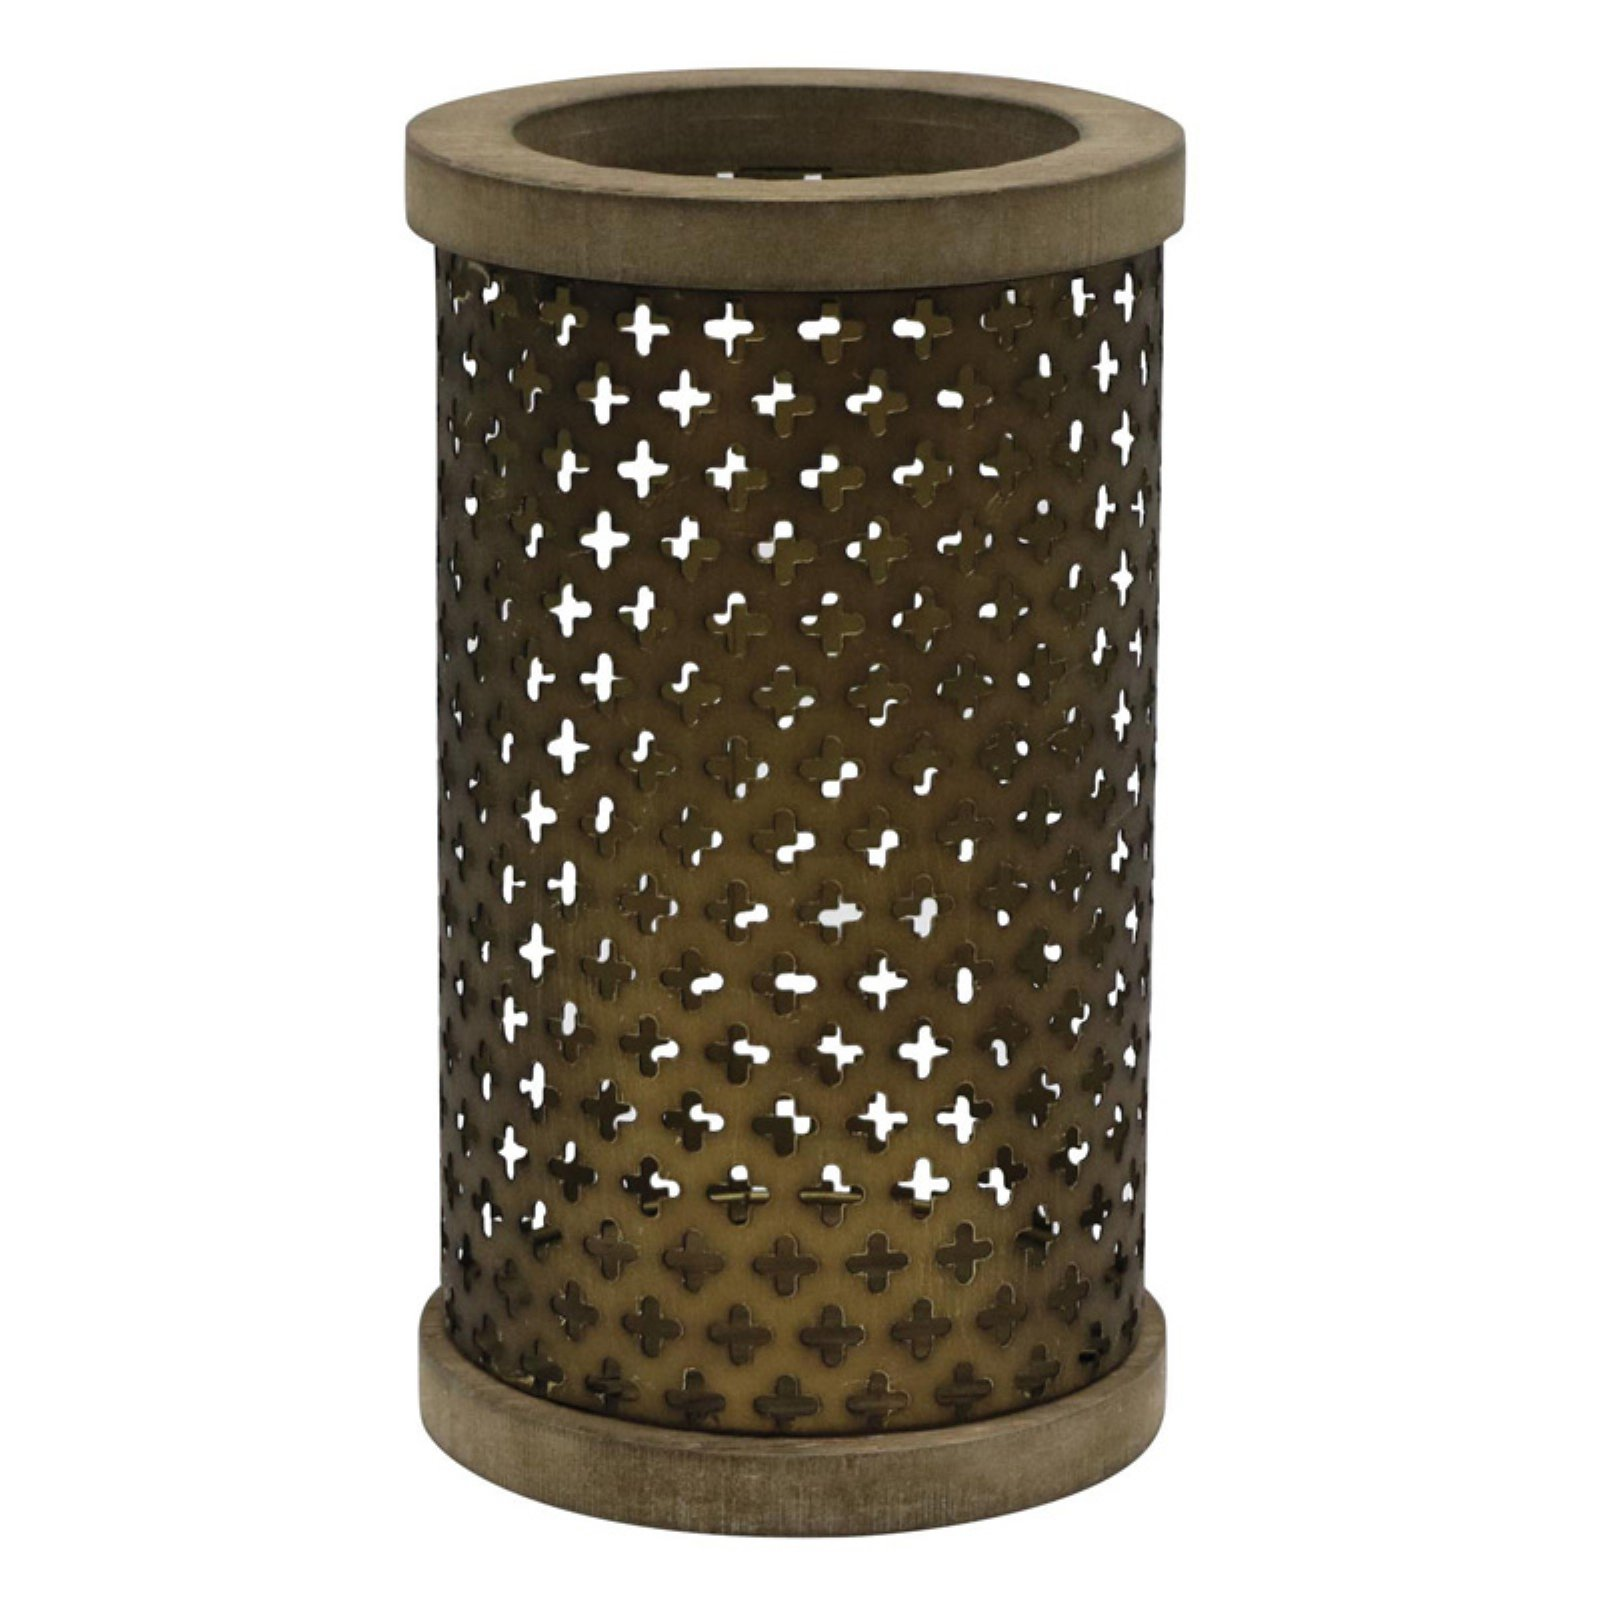 Foreside Home and Garden Cross Stamped Candle Holder - Walmart.com